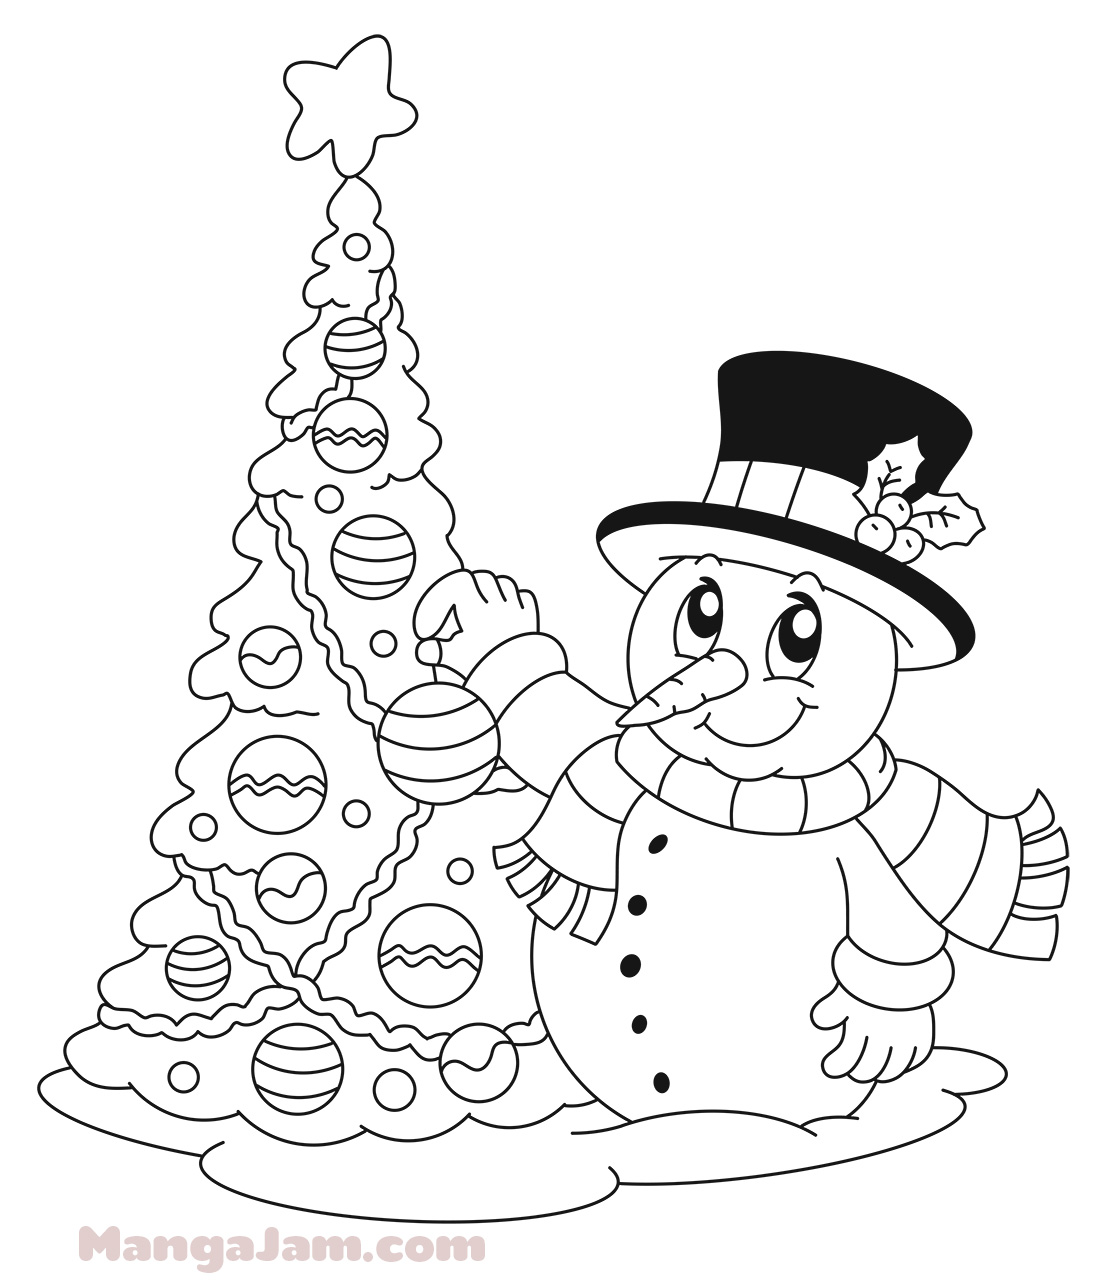 christmas drawings step by step drawing a real christmas tree step by step christmas step christmas drawings step by